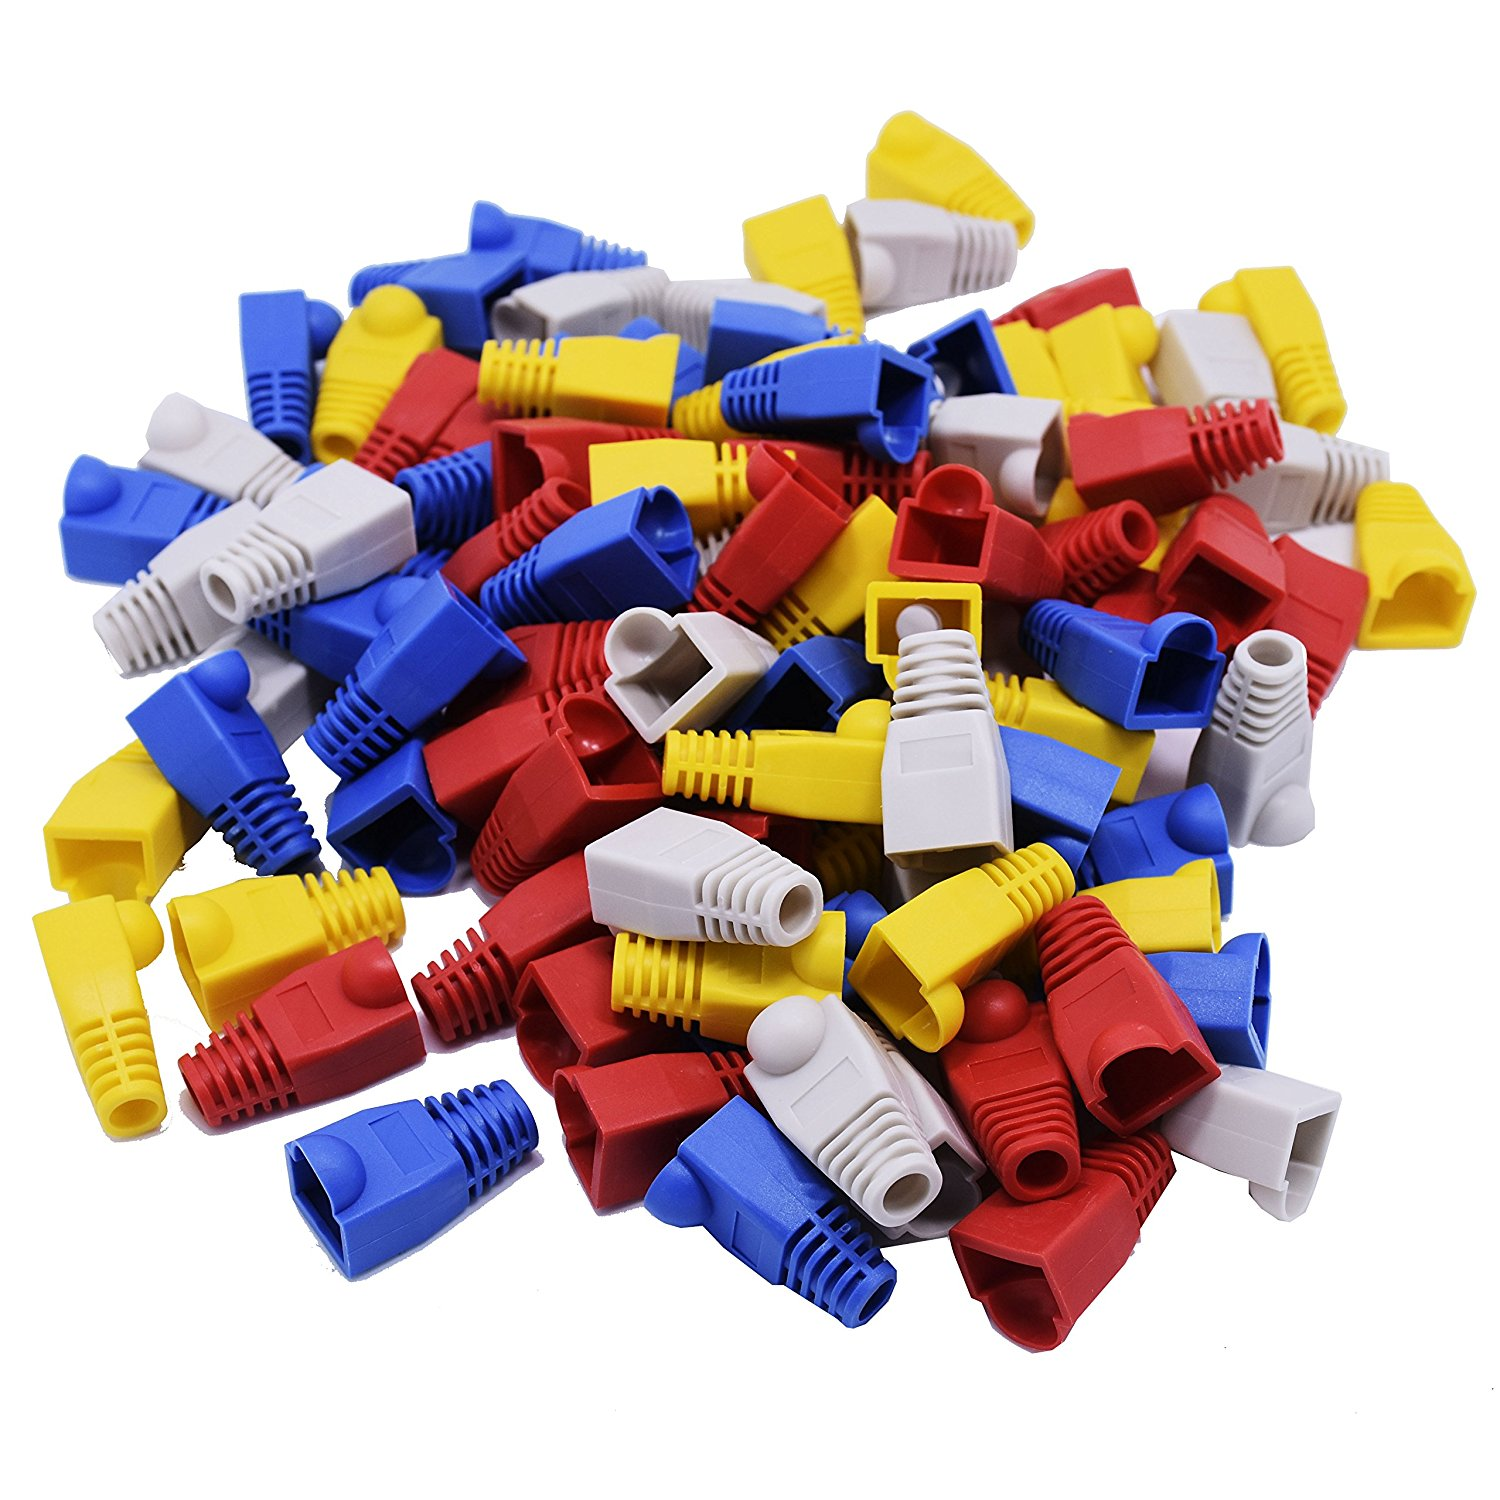 TOOTO 100 Pcs Mixed Color CAT5E CAT6 RJ45 Ethernet Network Cable Strain Relief Boots Cable Connector Plug Cover, Network Cable Boots Cap Cover